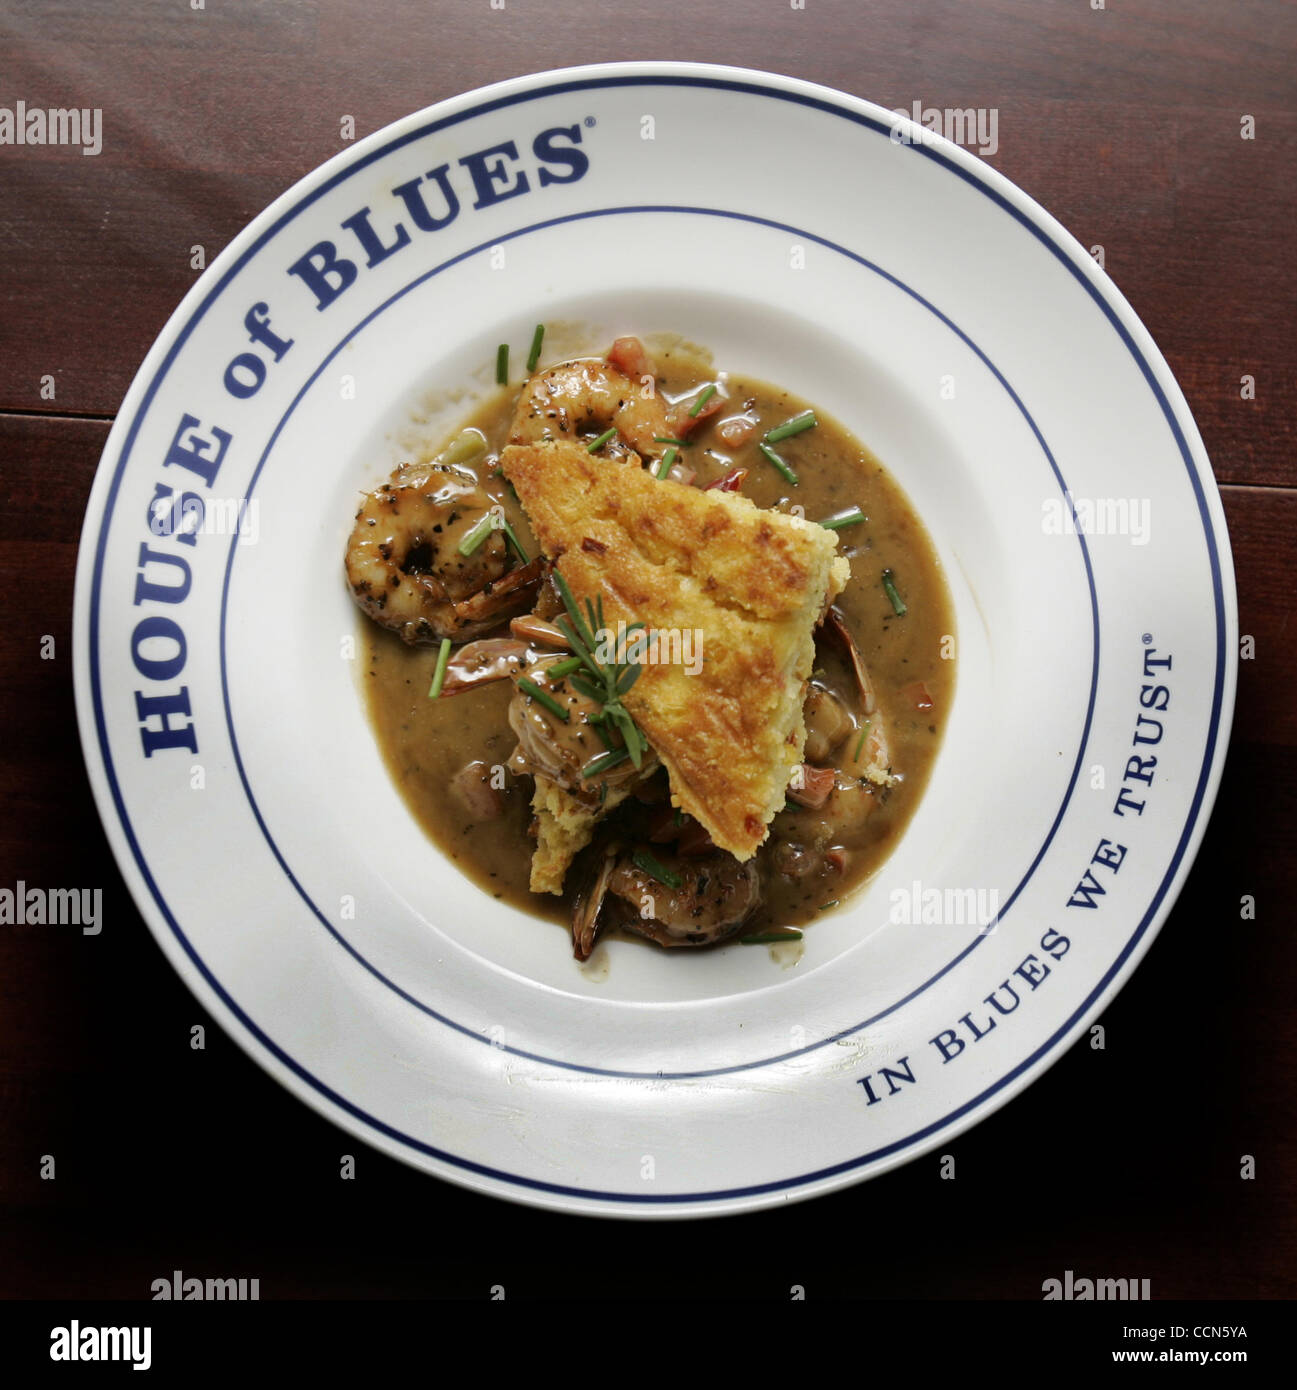 (Published 5/26/2005, Night & Day-2) May 18---This dish is called Voodoo - Stock Image